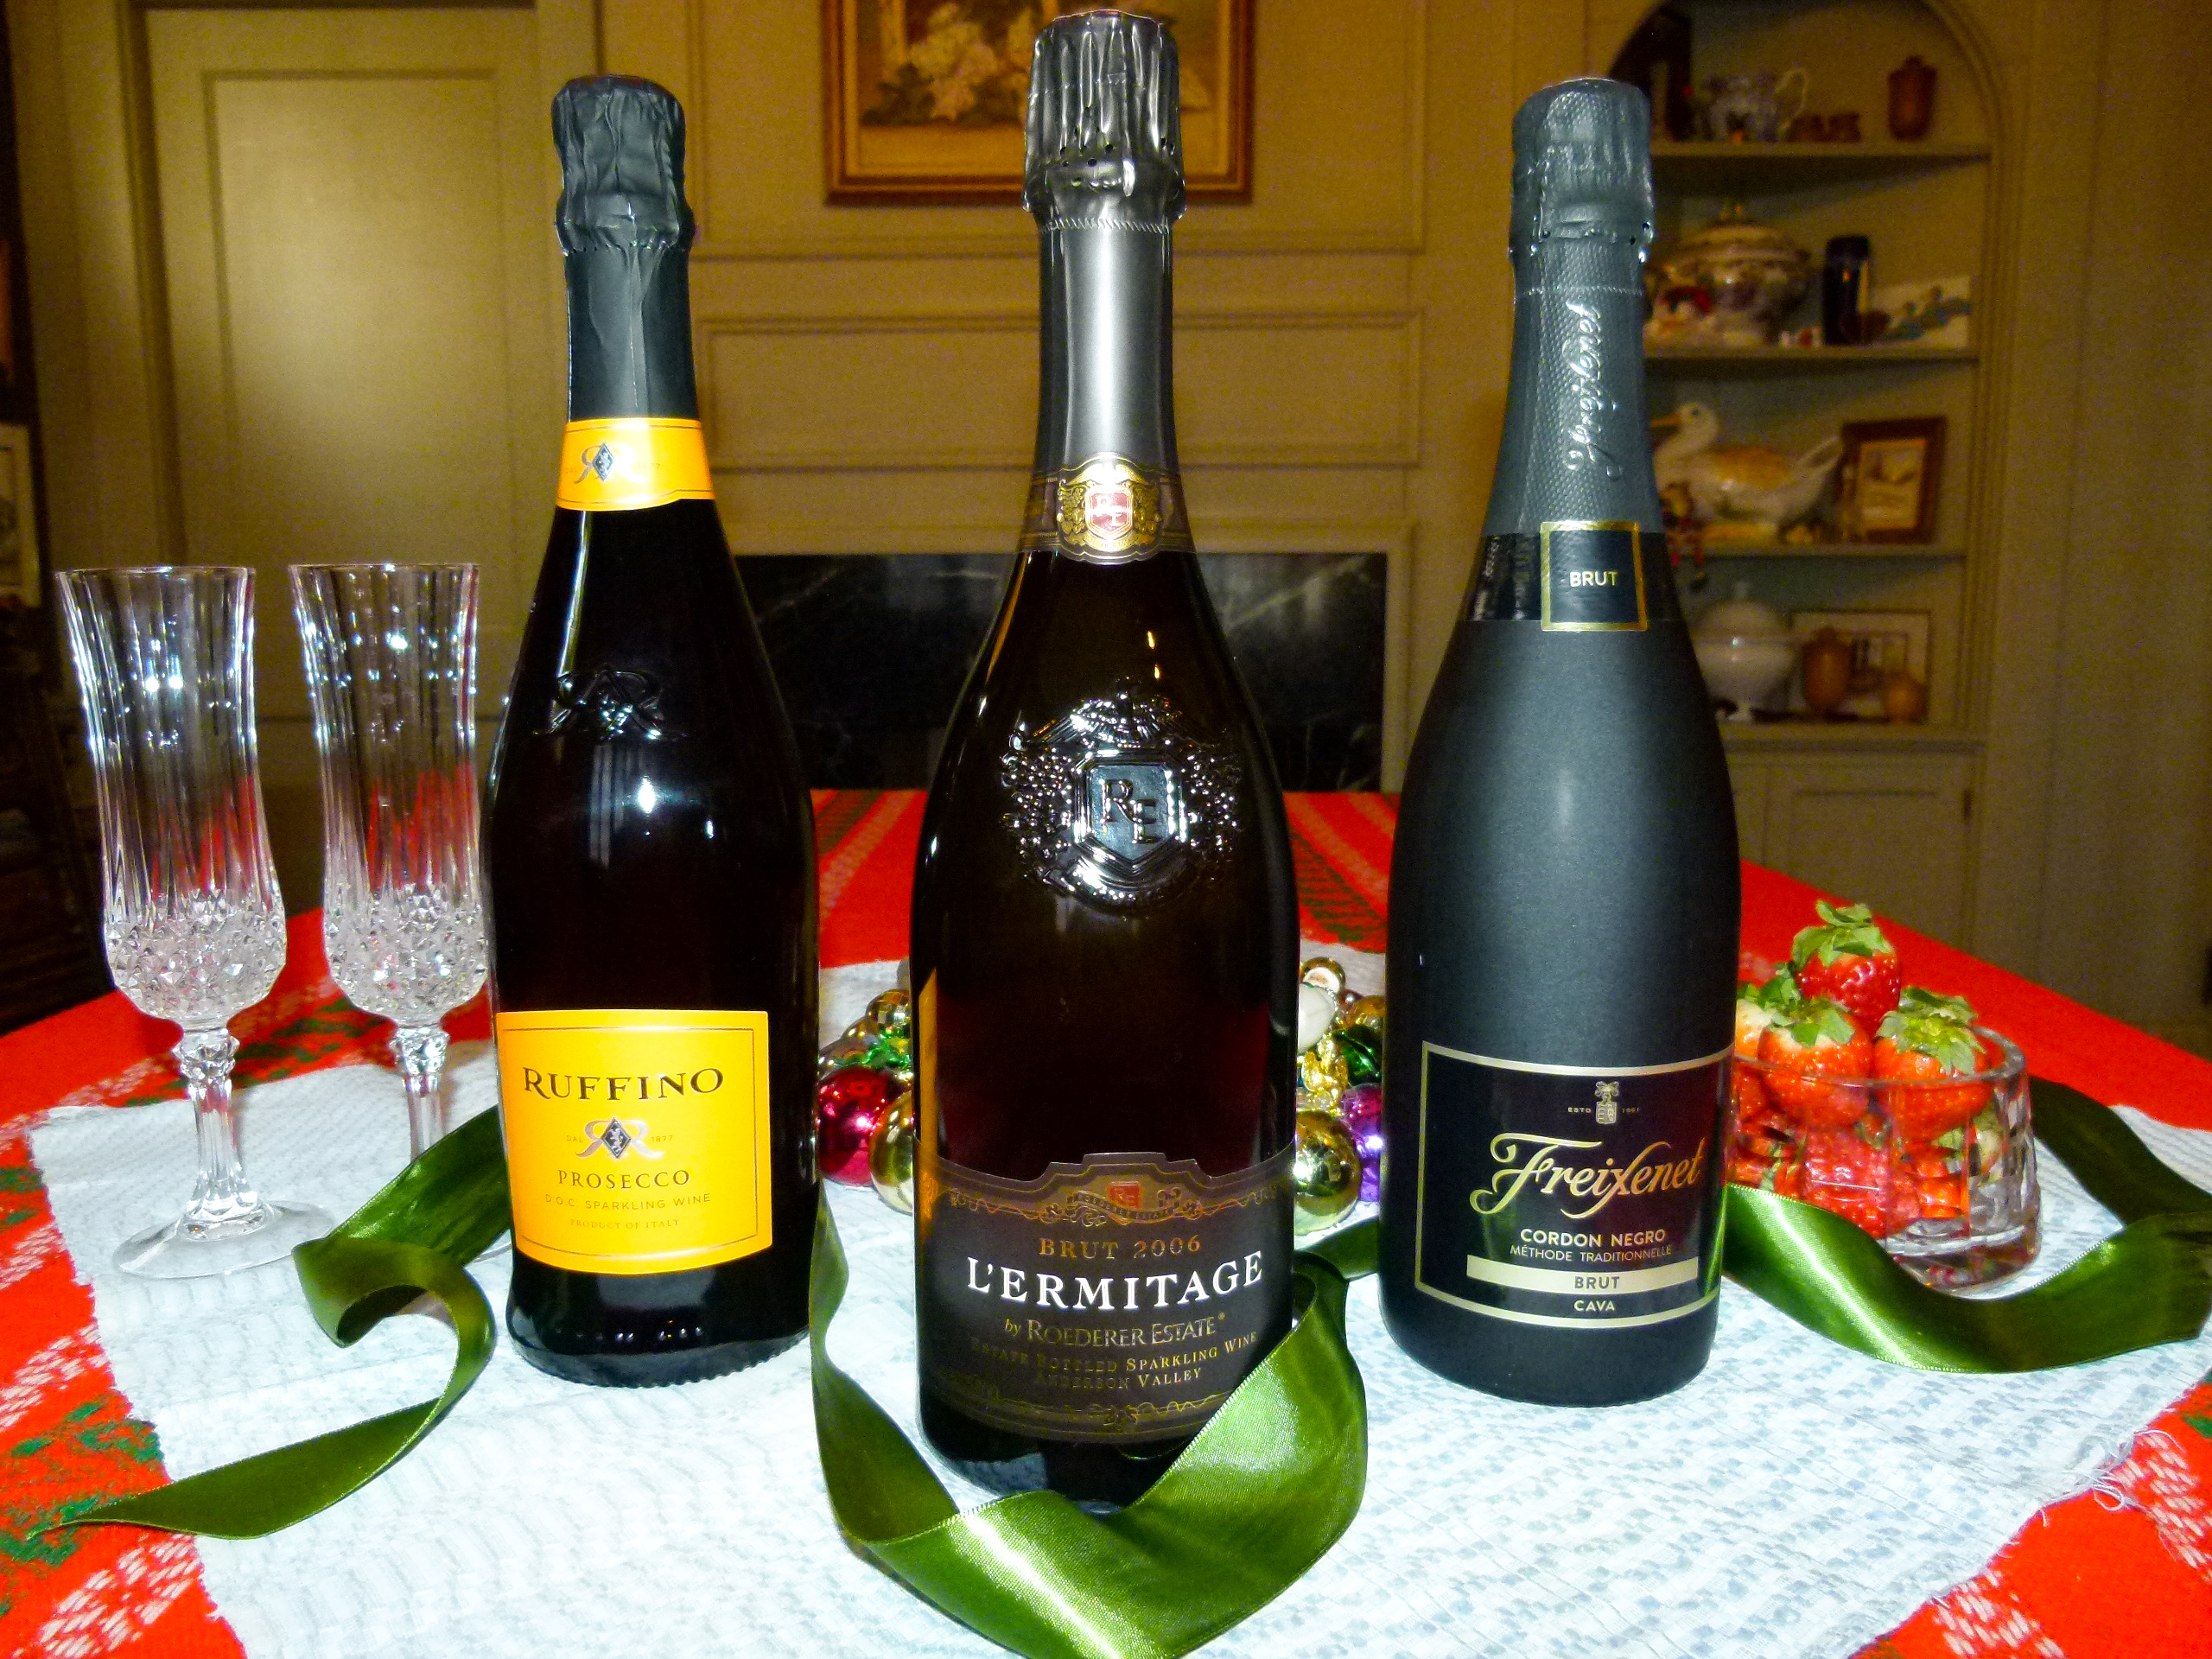 Several possible champagne choices for New Year's Eve. (photo: Rick Handler)